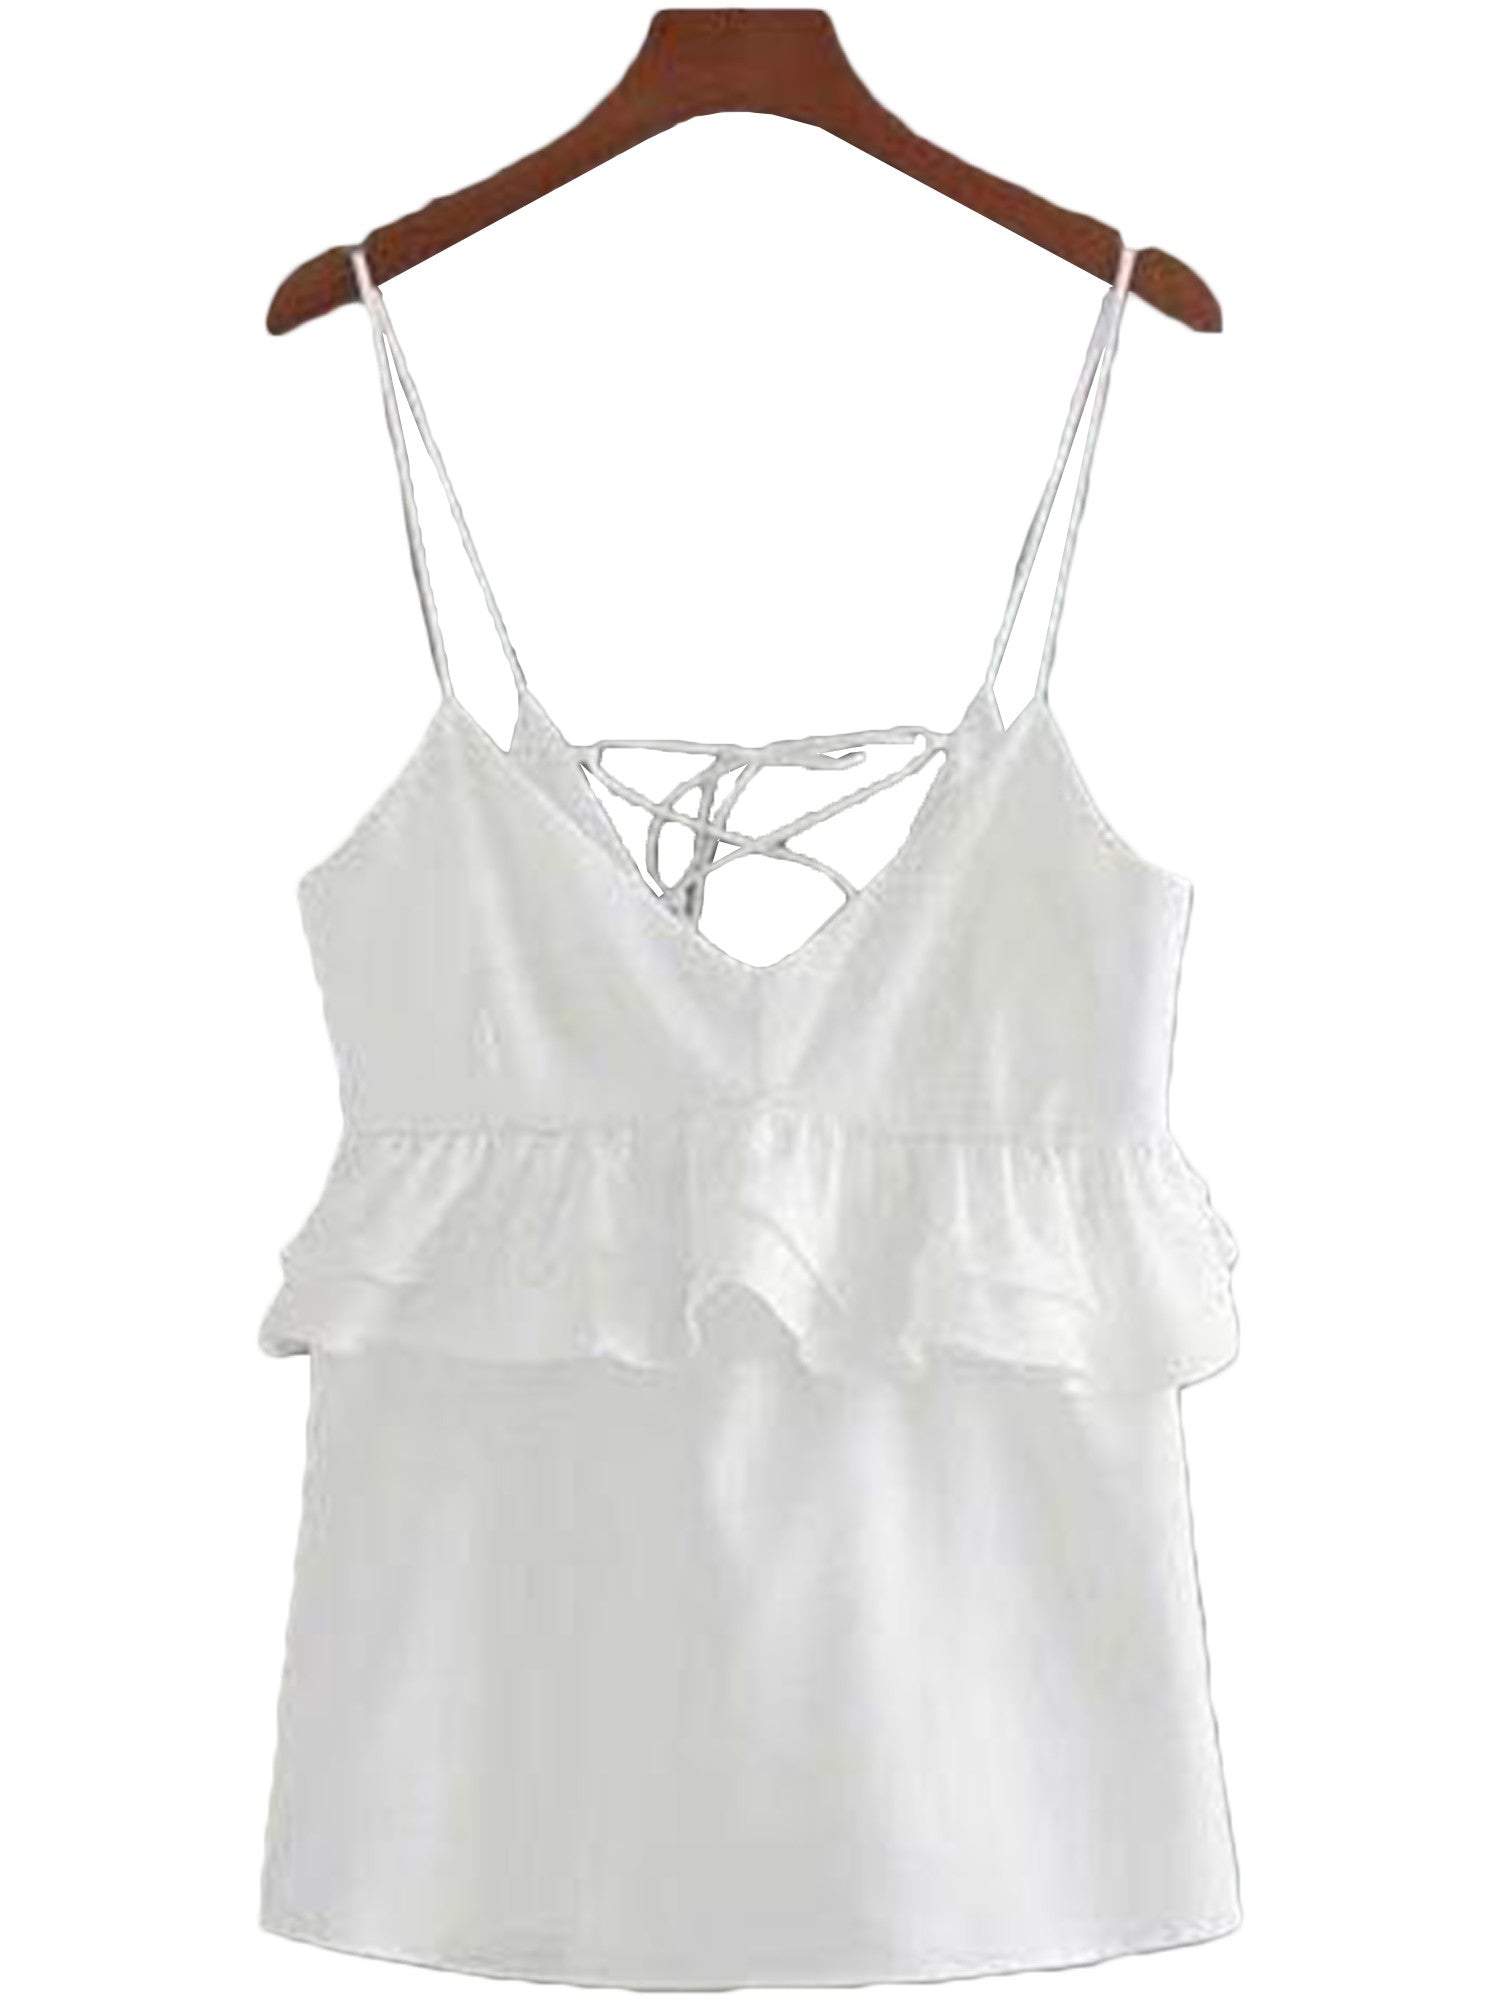 'London' Criss Cross Frill Cami Top